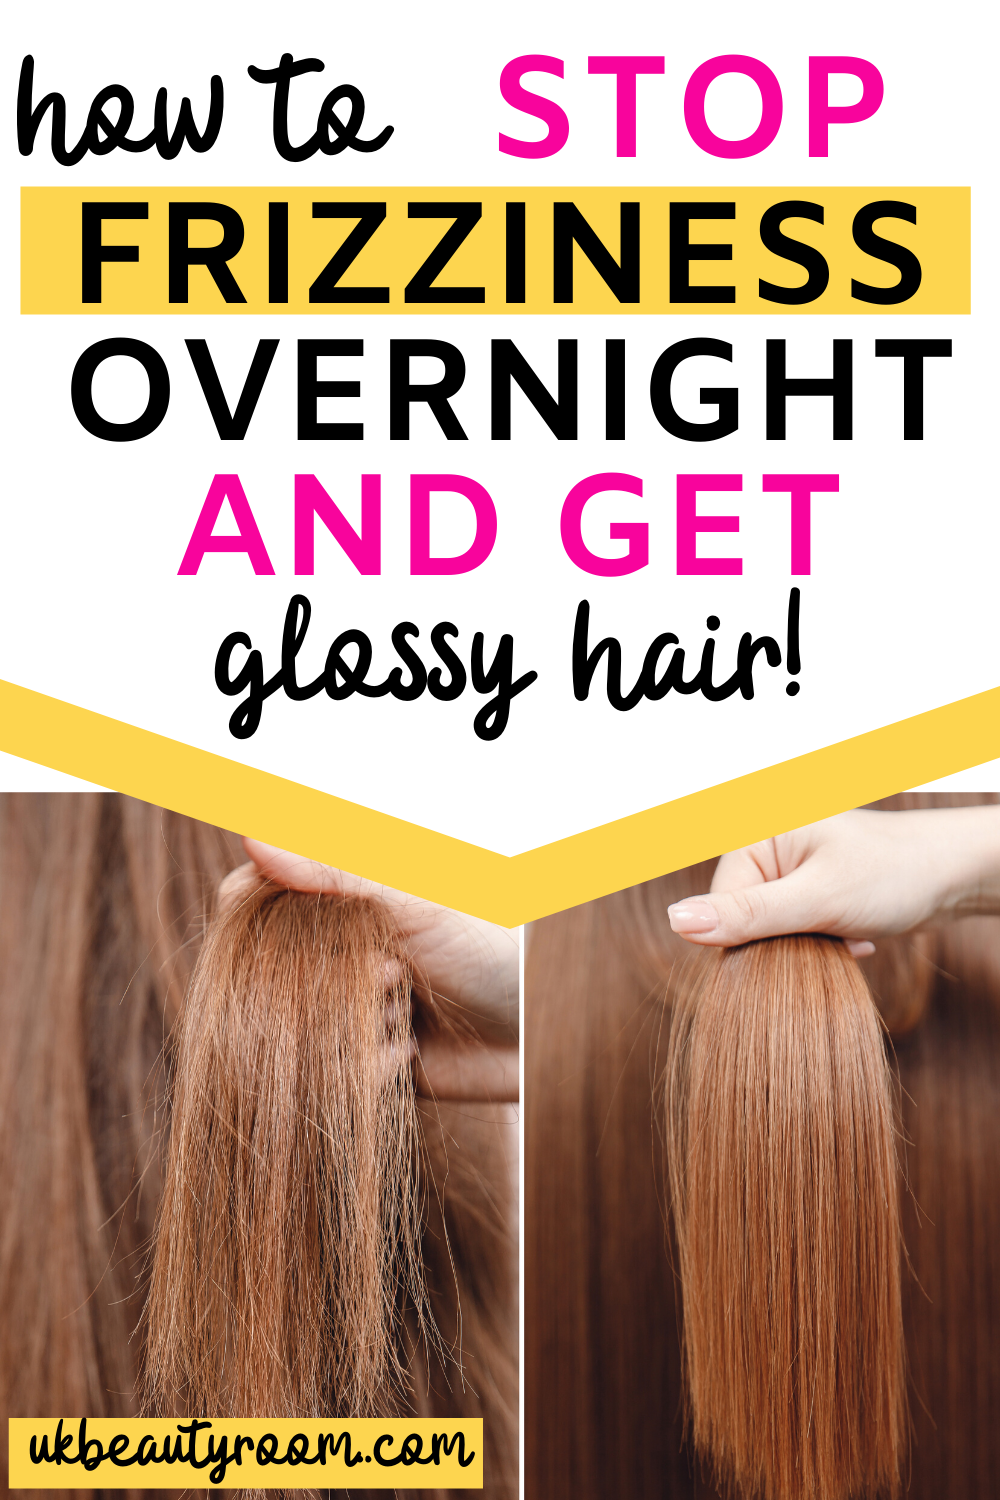 How to Stop Frizzy Hair After Washing - 9 Amazing Products for Hair Maintenance